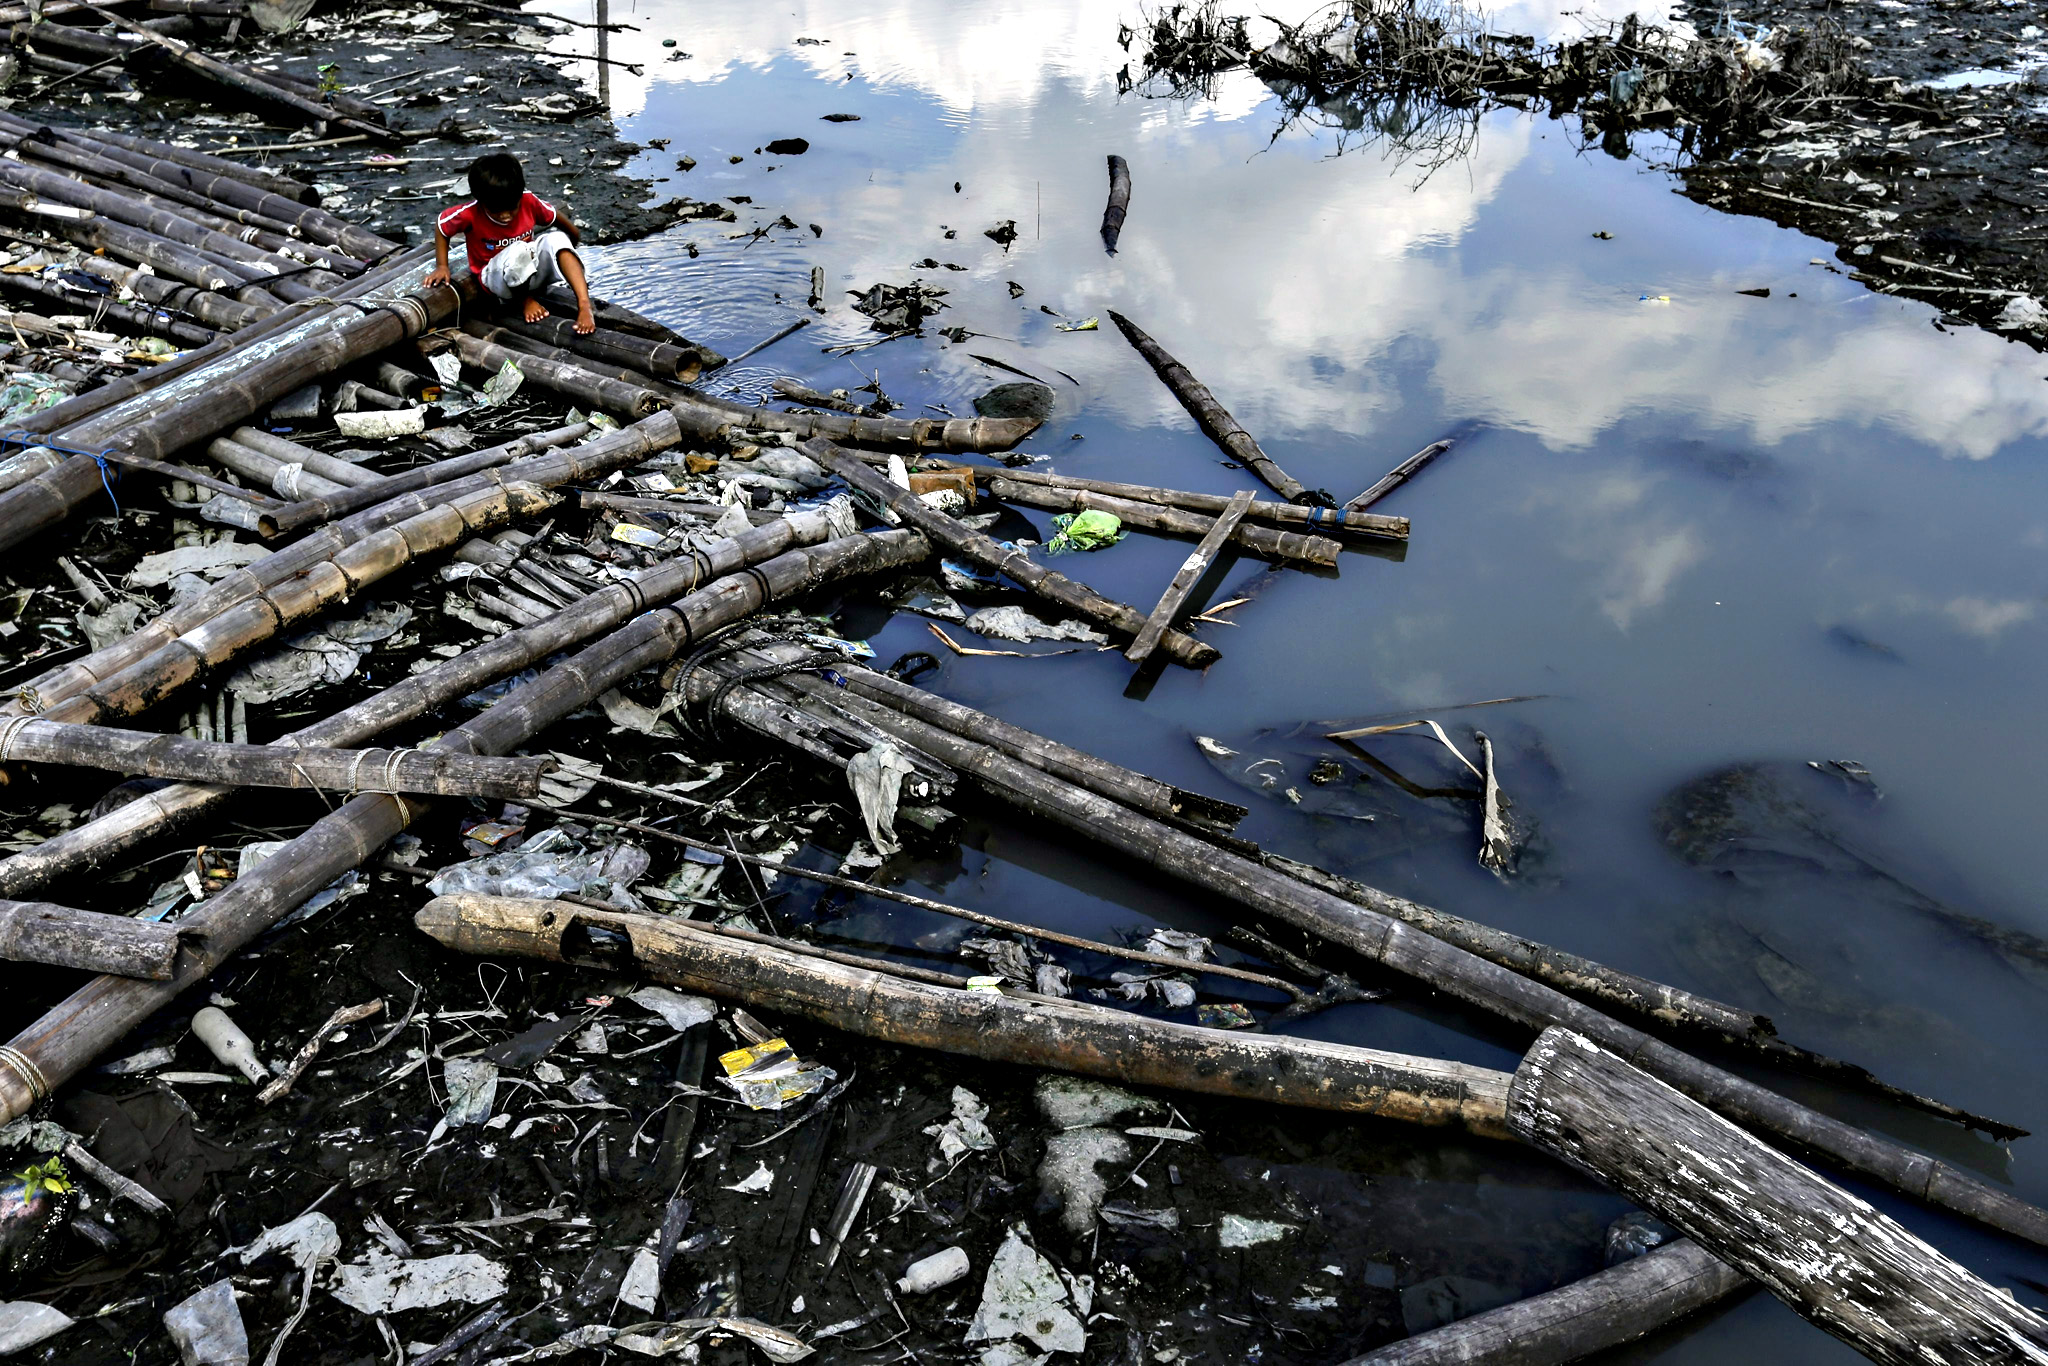 A Filipino informal settler boy frolics at a polluted coastline at a fishing village in Paranaque city, south of Manila, Philippines, on Friday. Street vendors and homeless people near the APEC 2015 venues have been rounded up, while protesters were told that they demonstrate only in designated areas away from the site of the summit.